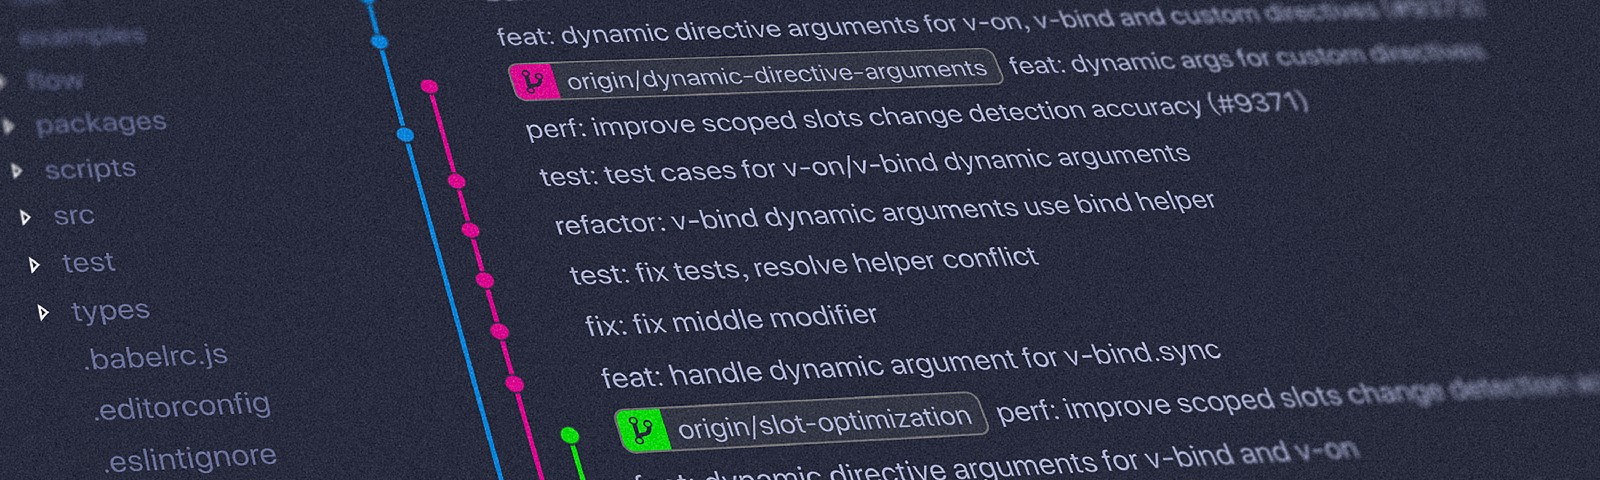 Example of Git repo